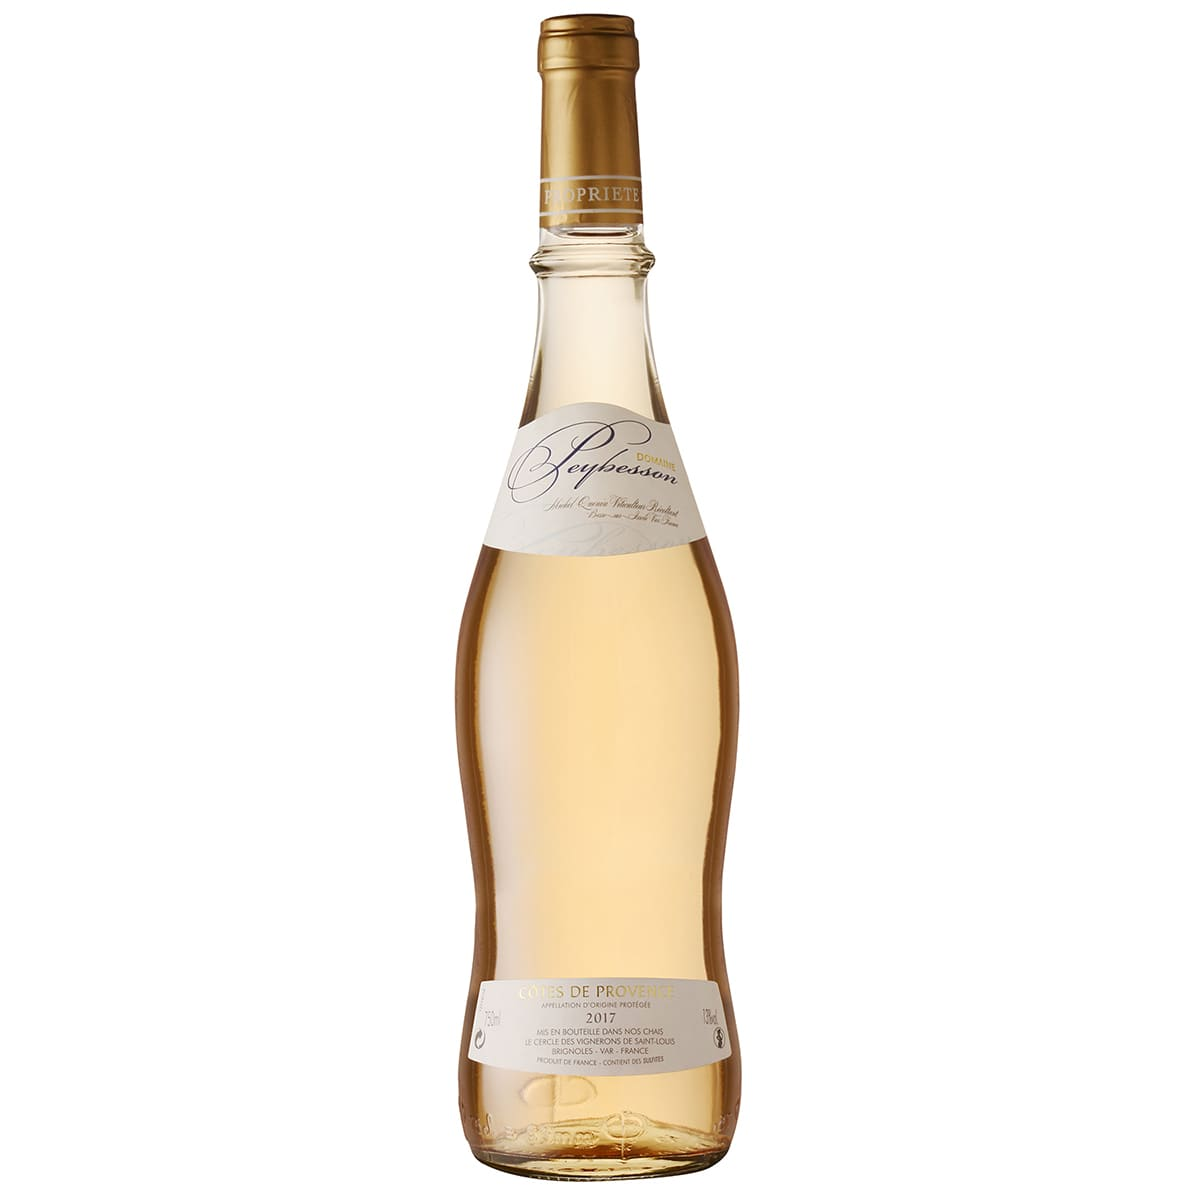 DOMAINE PEYBESSON ROSÉ PROVENCE 6X750ML